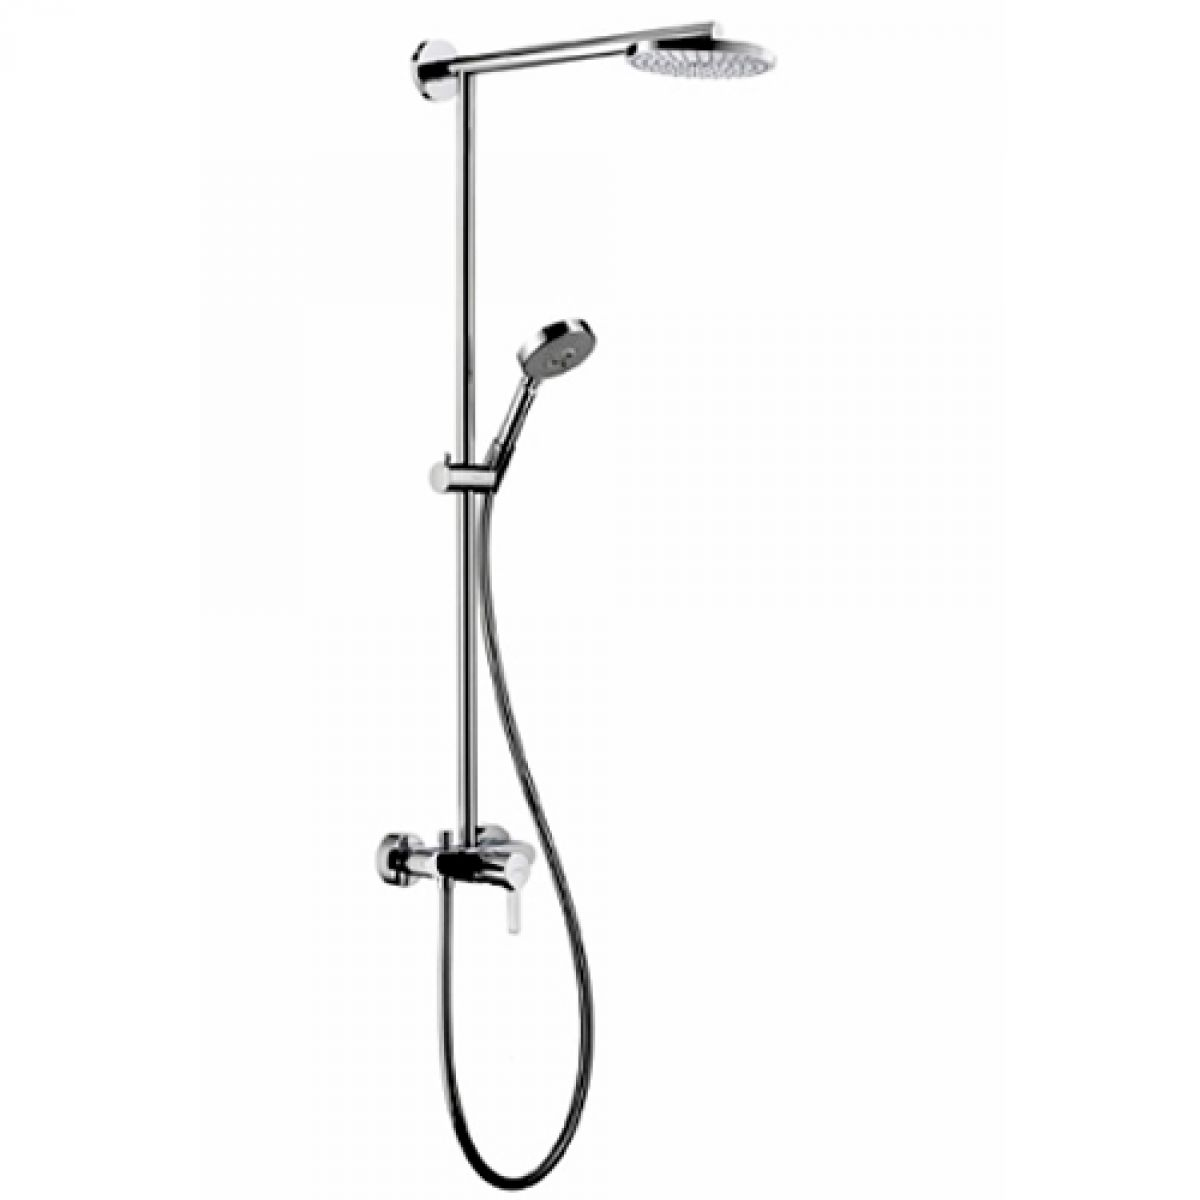 hansgrohe raindance showerpipe ecosmart s 180 air single lever 460mm shower arm uk bathrooms. Black Bedroom Furniture Sets. Home Design Ideas